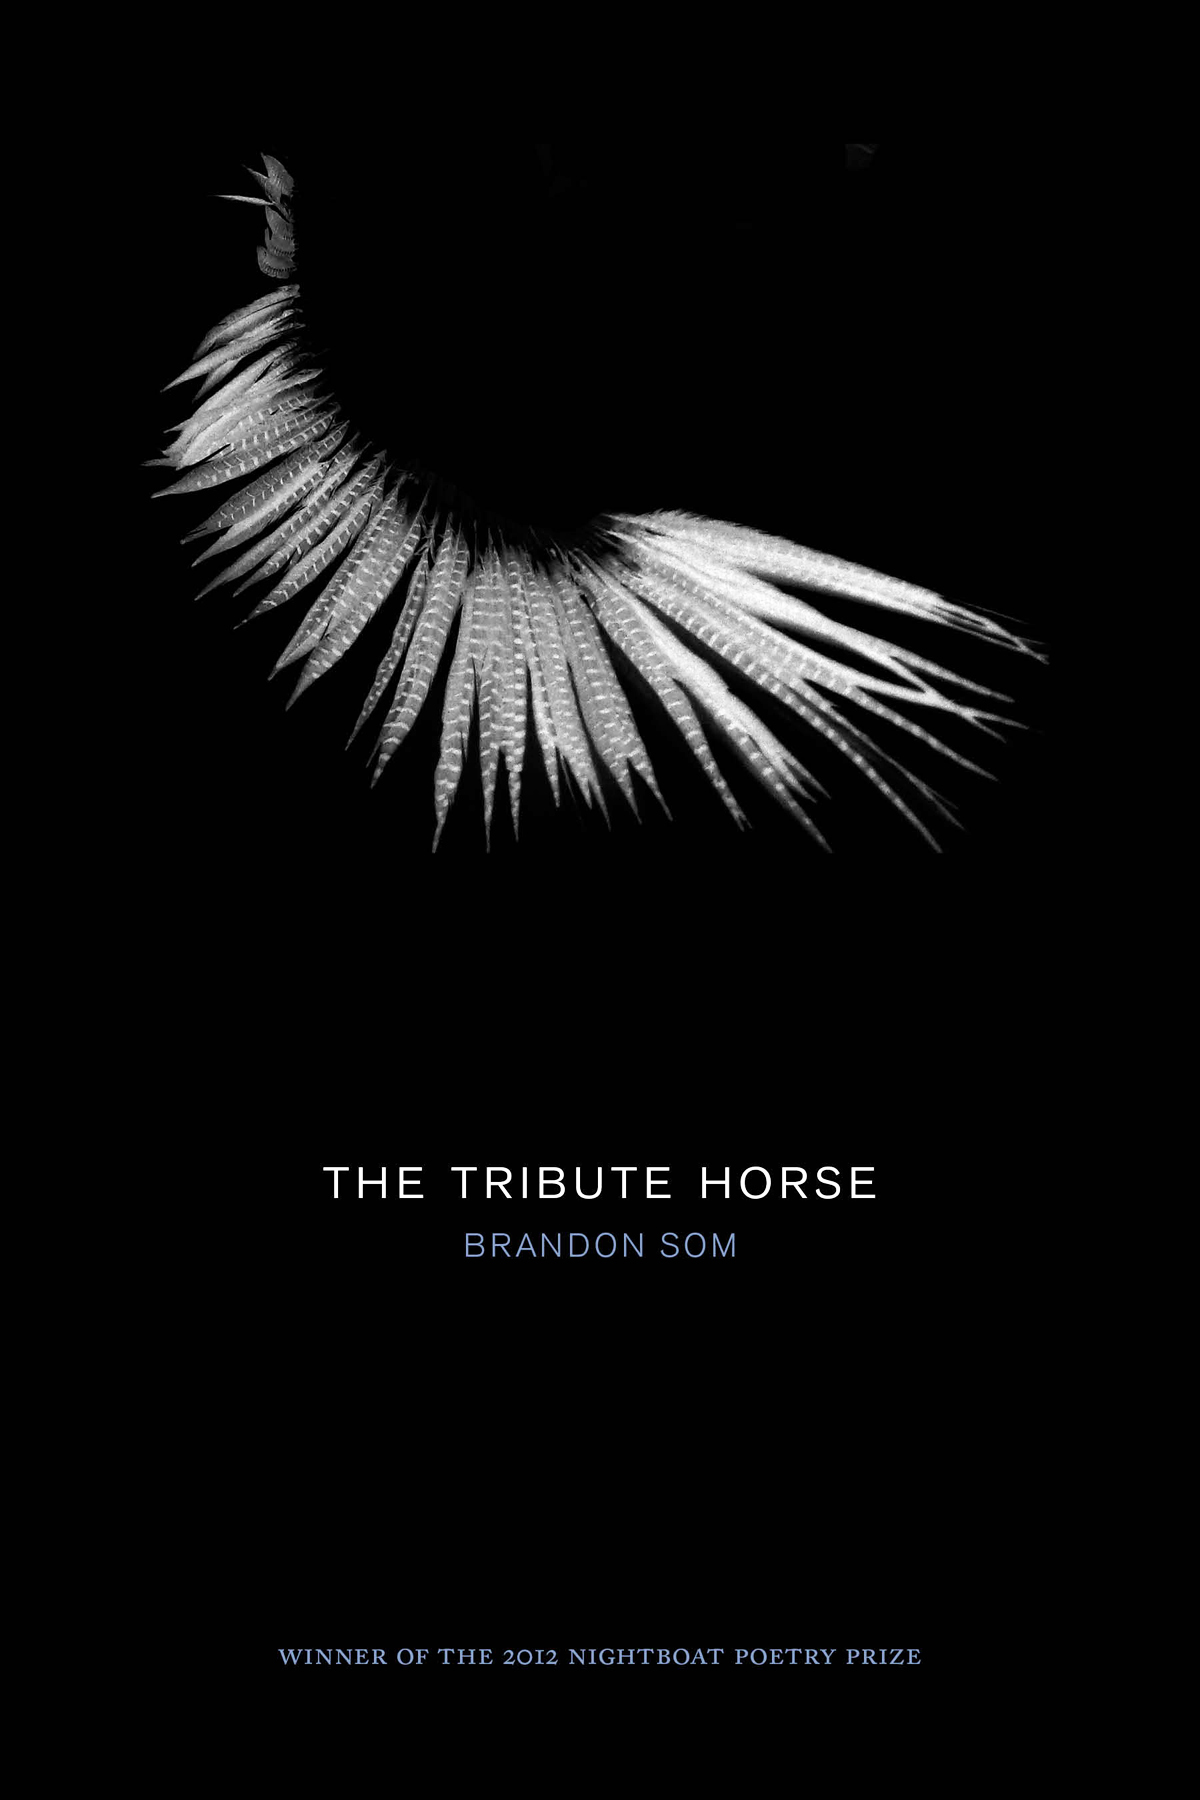 Brandon Som's debut book of poems The Tribute Horse.